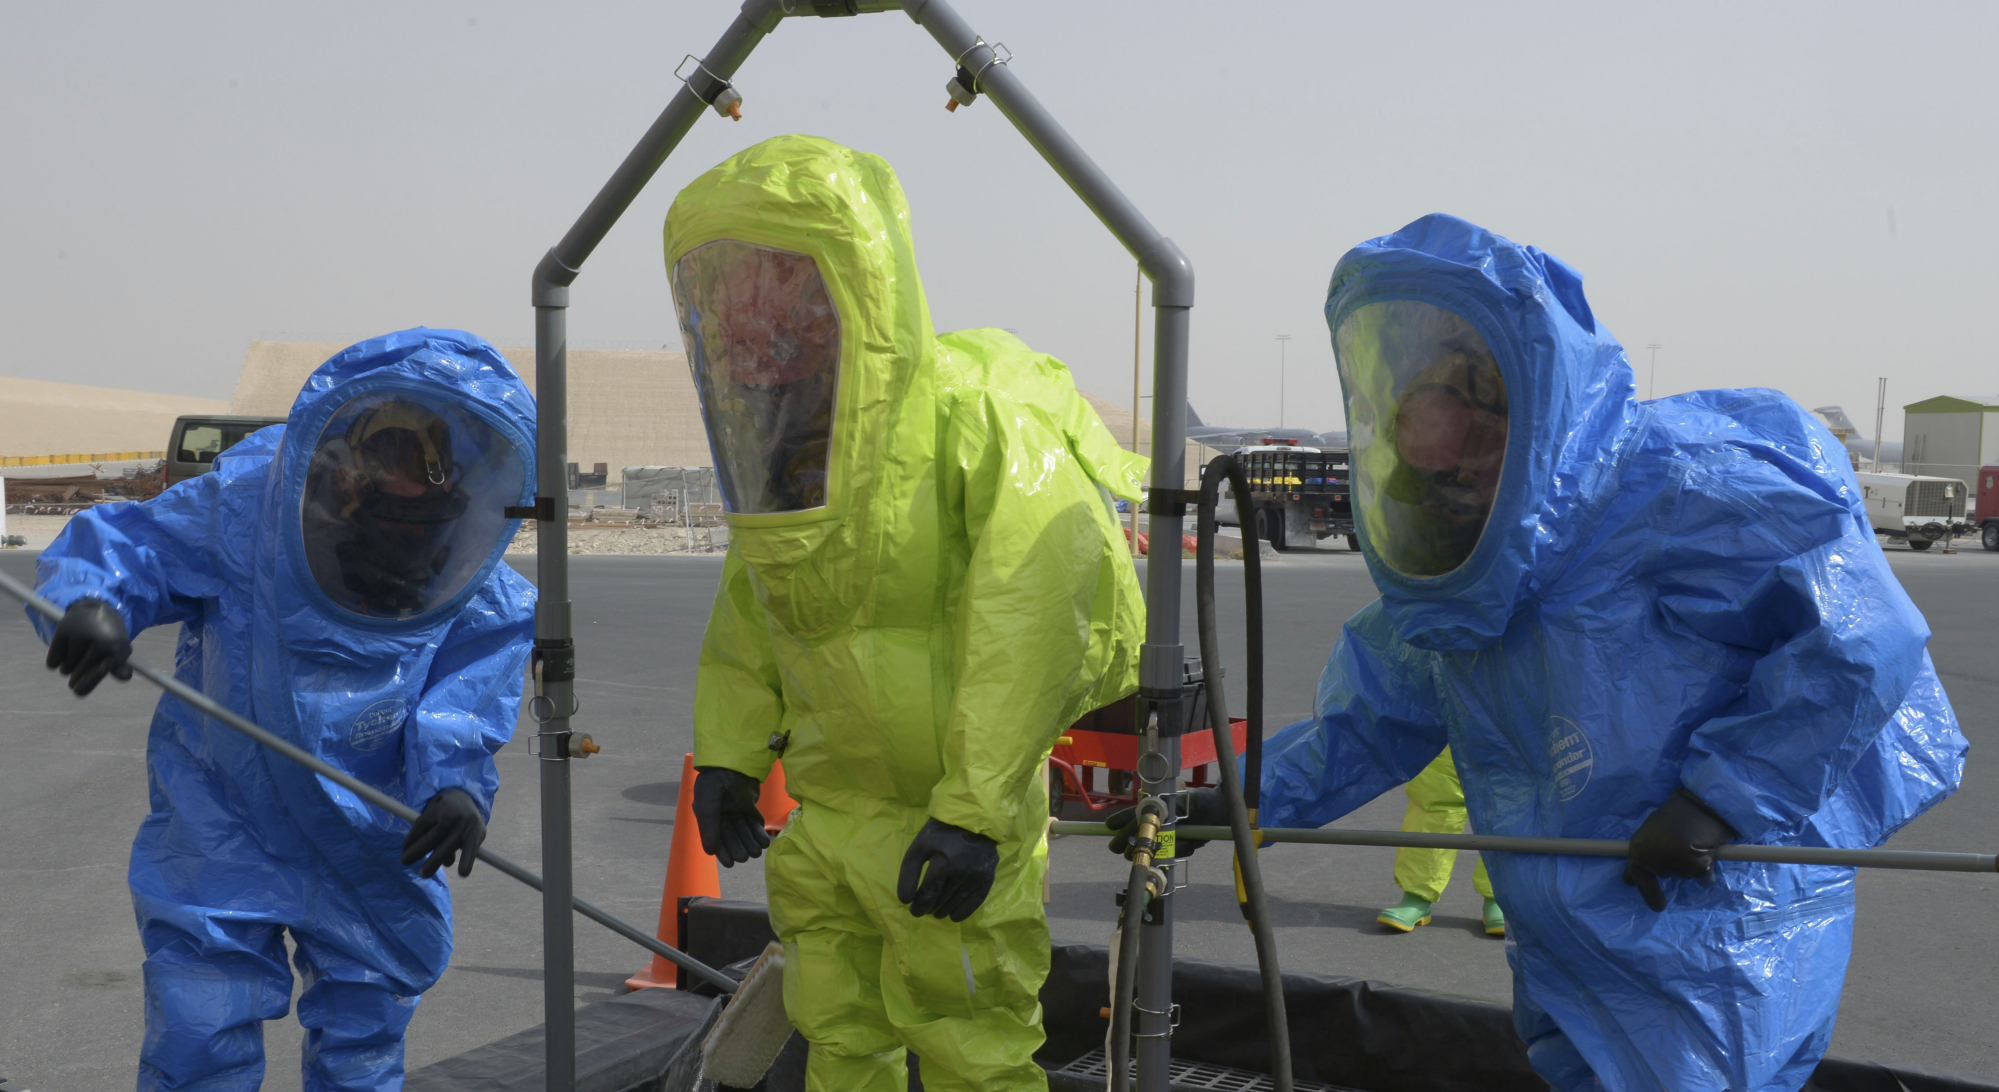 Three first responders in hazmat suits